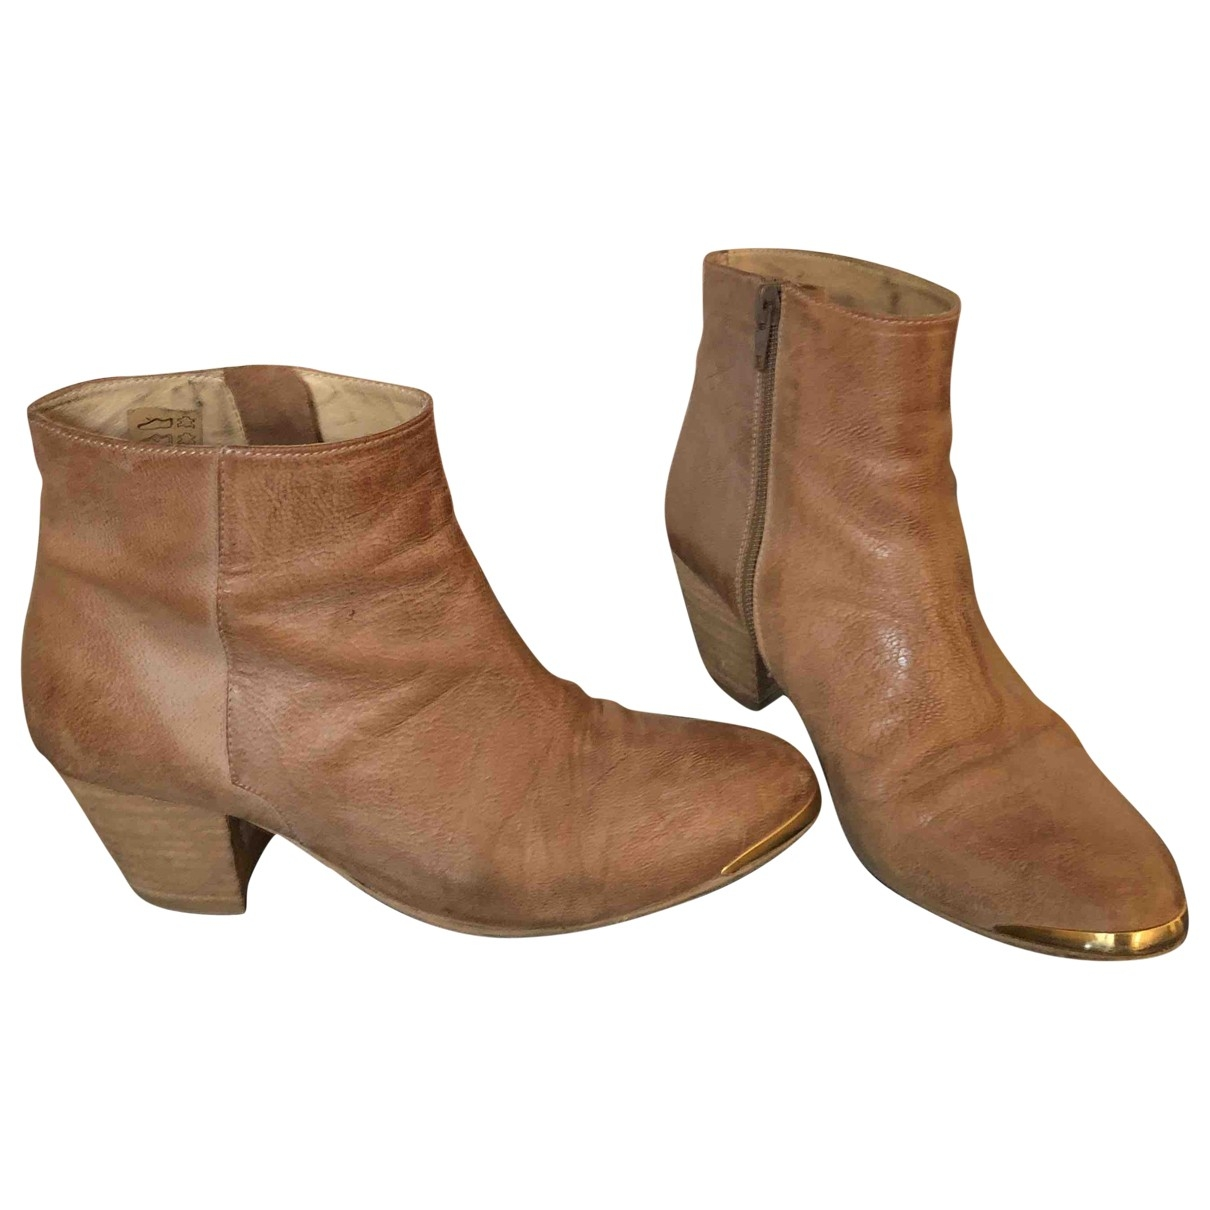 Gerard Darel \N Beige Leather Ankle boots for Women 36 EU